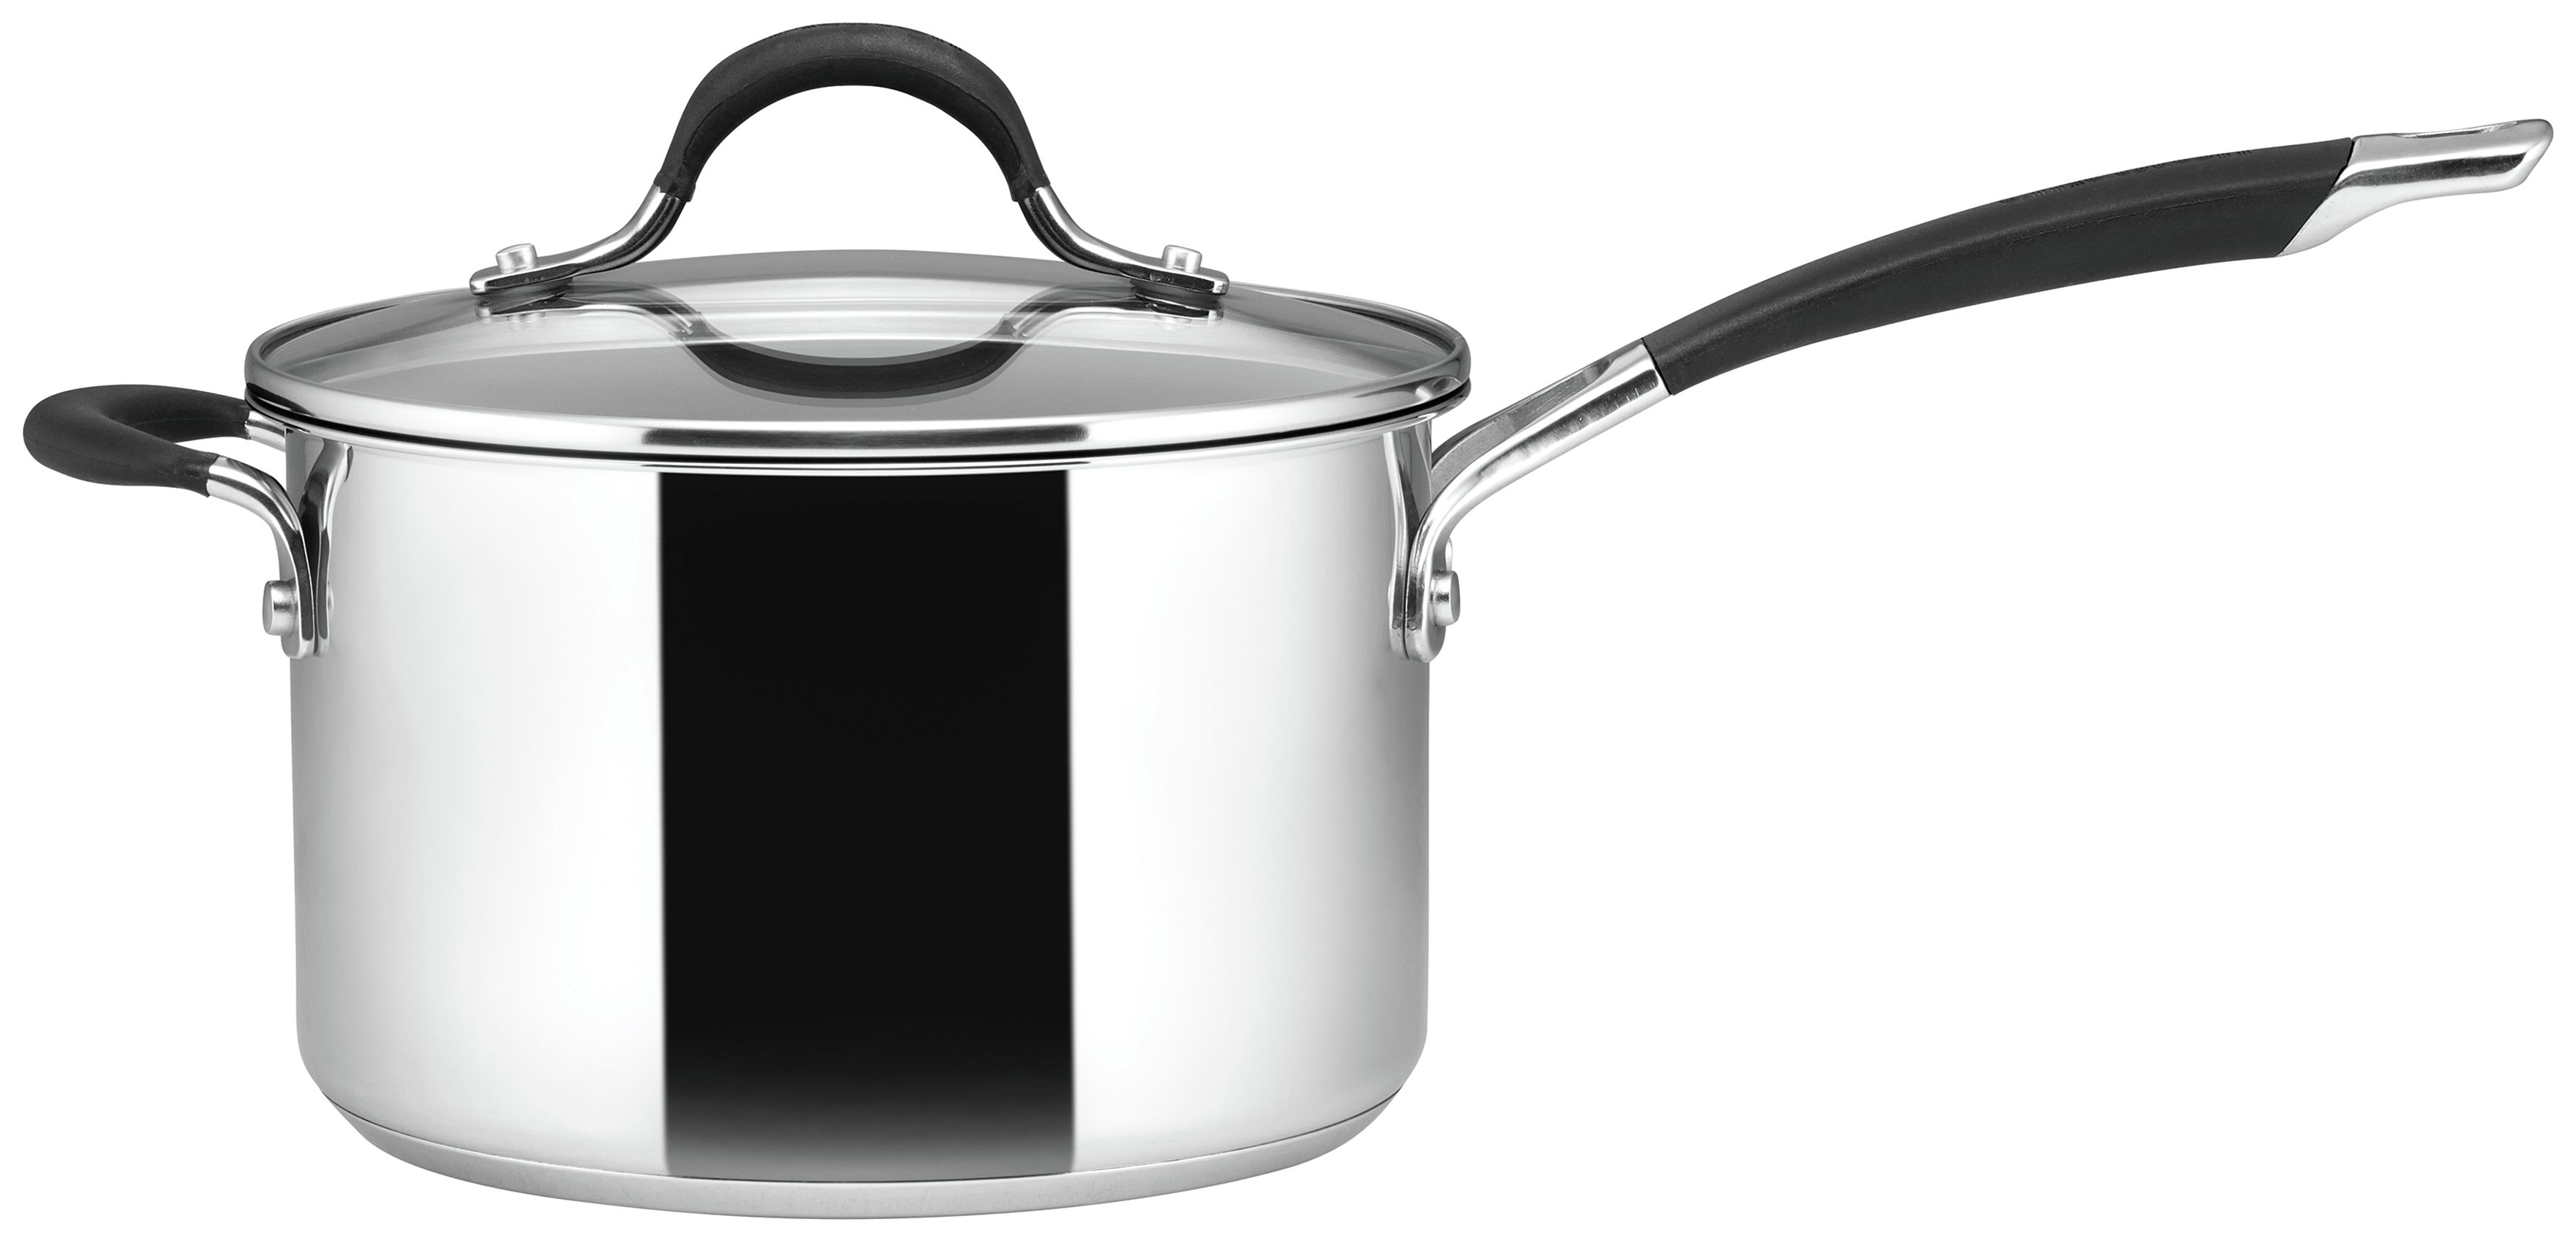 Circulon Momentum 20cm Stainless Steel Covered Saucepan